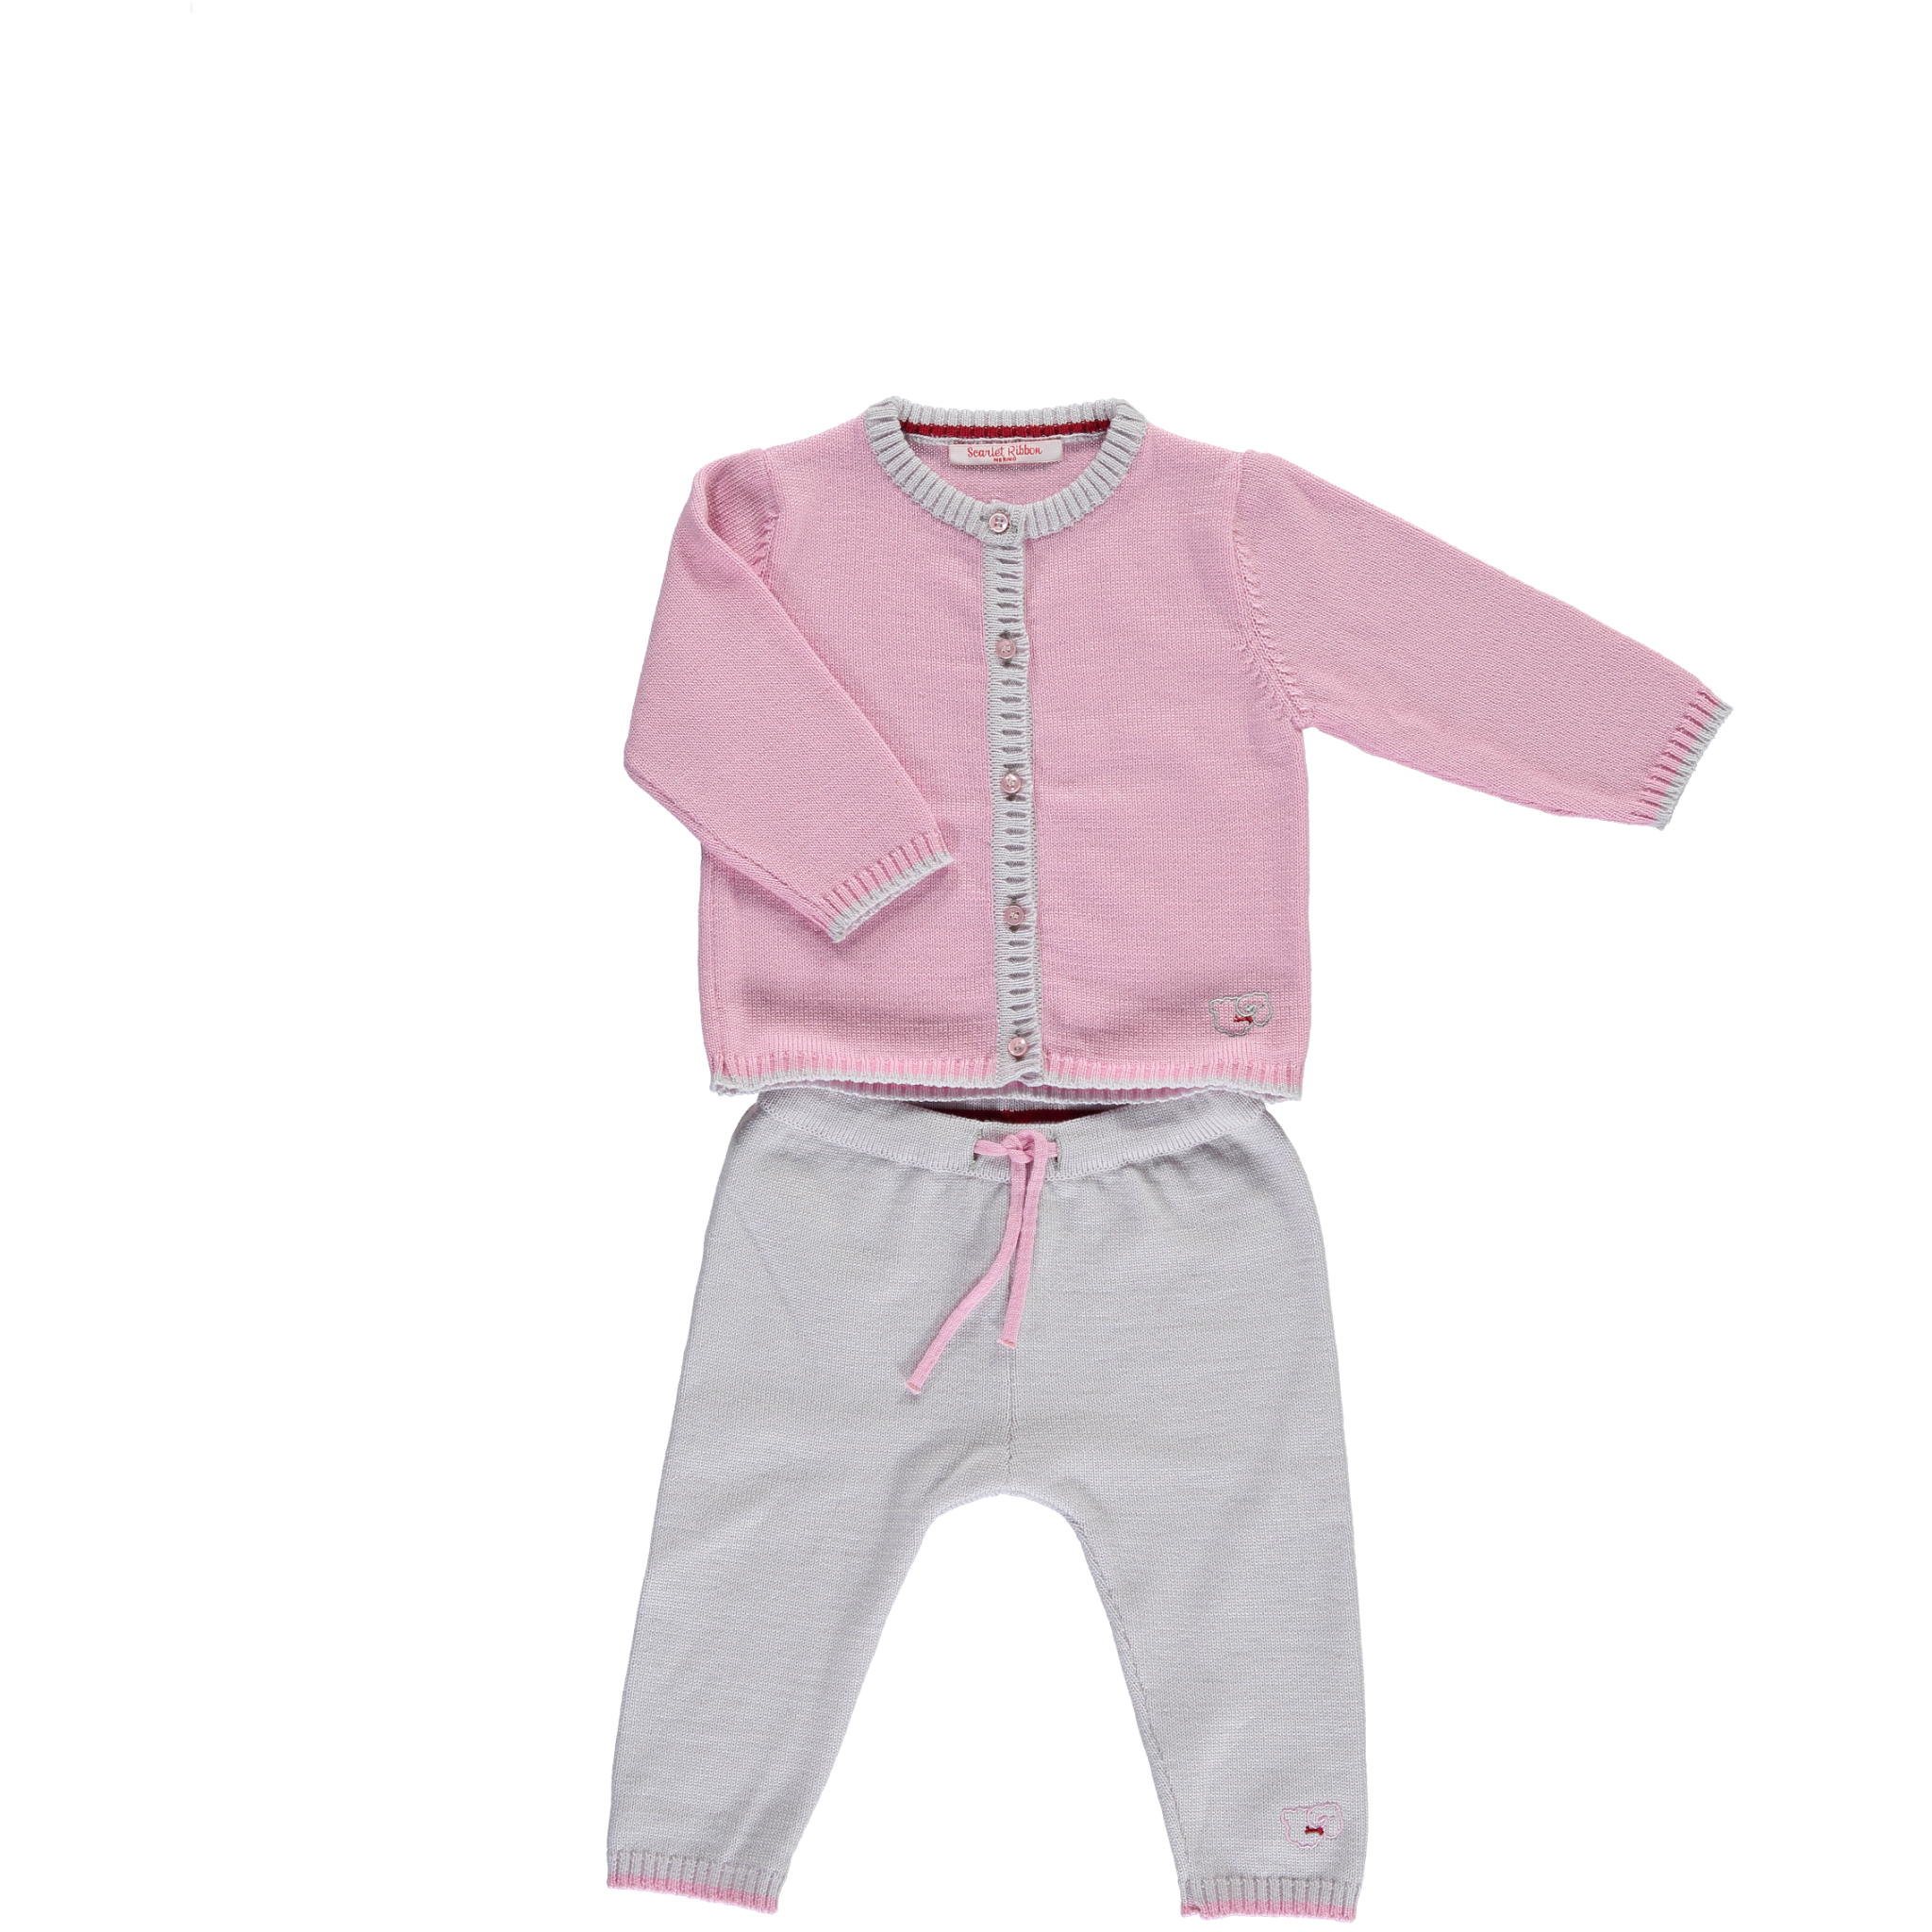 Pajamas clipart babygrow. Gifts for baby girls